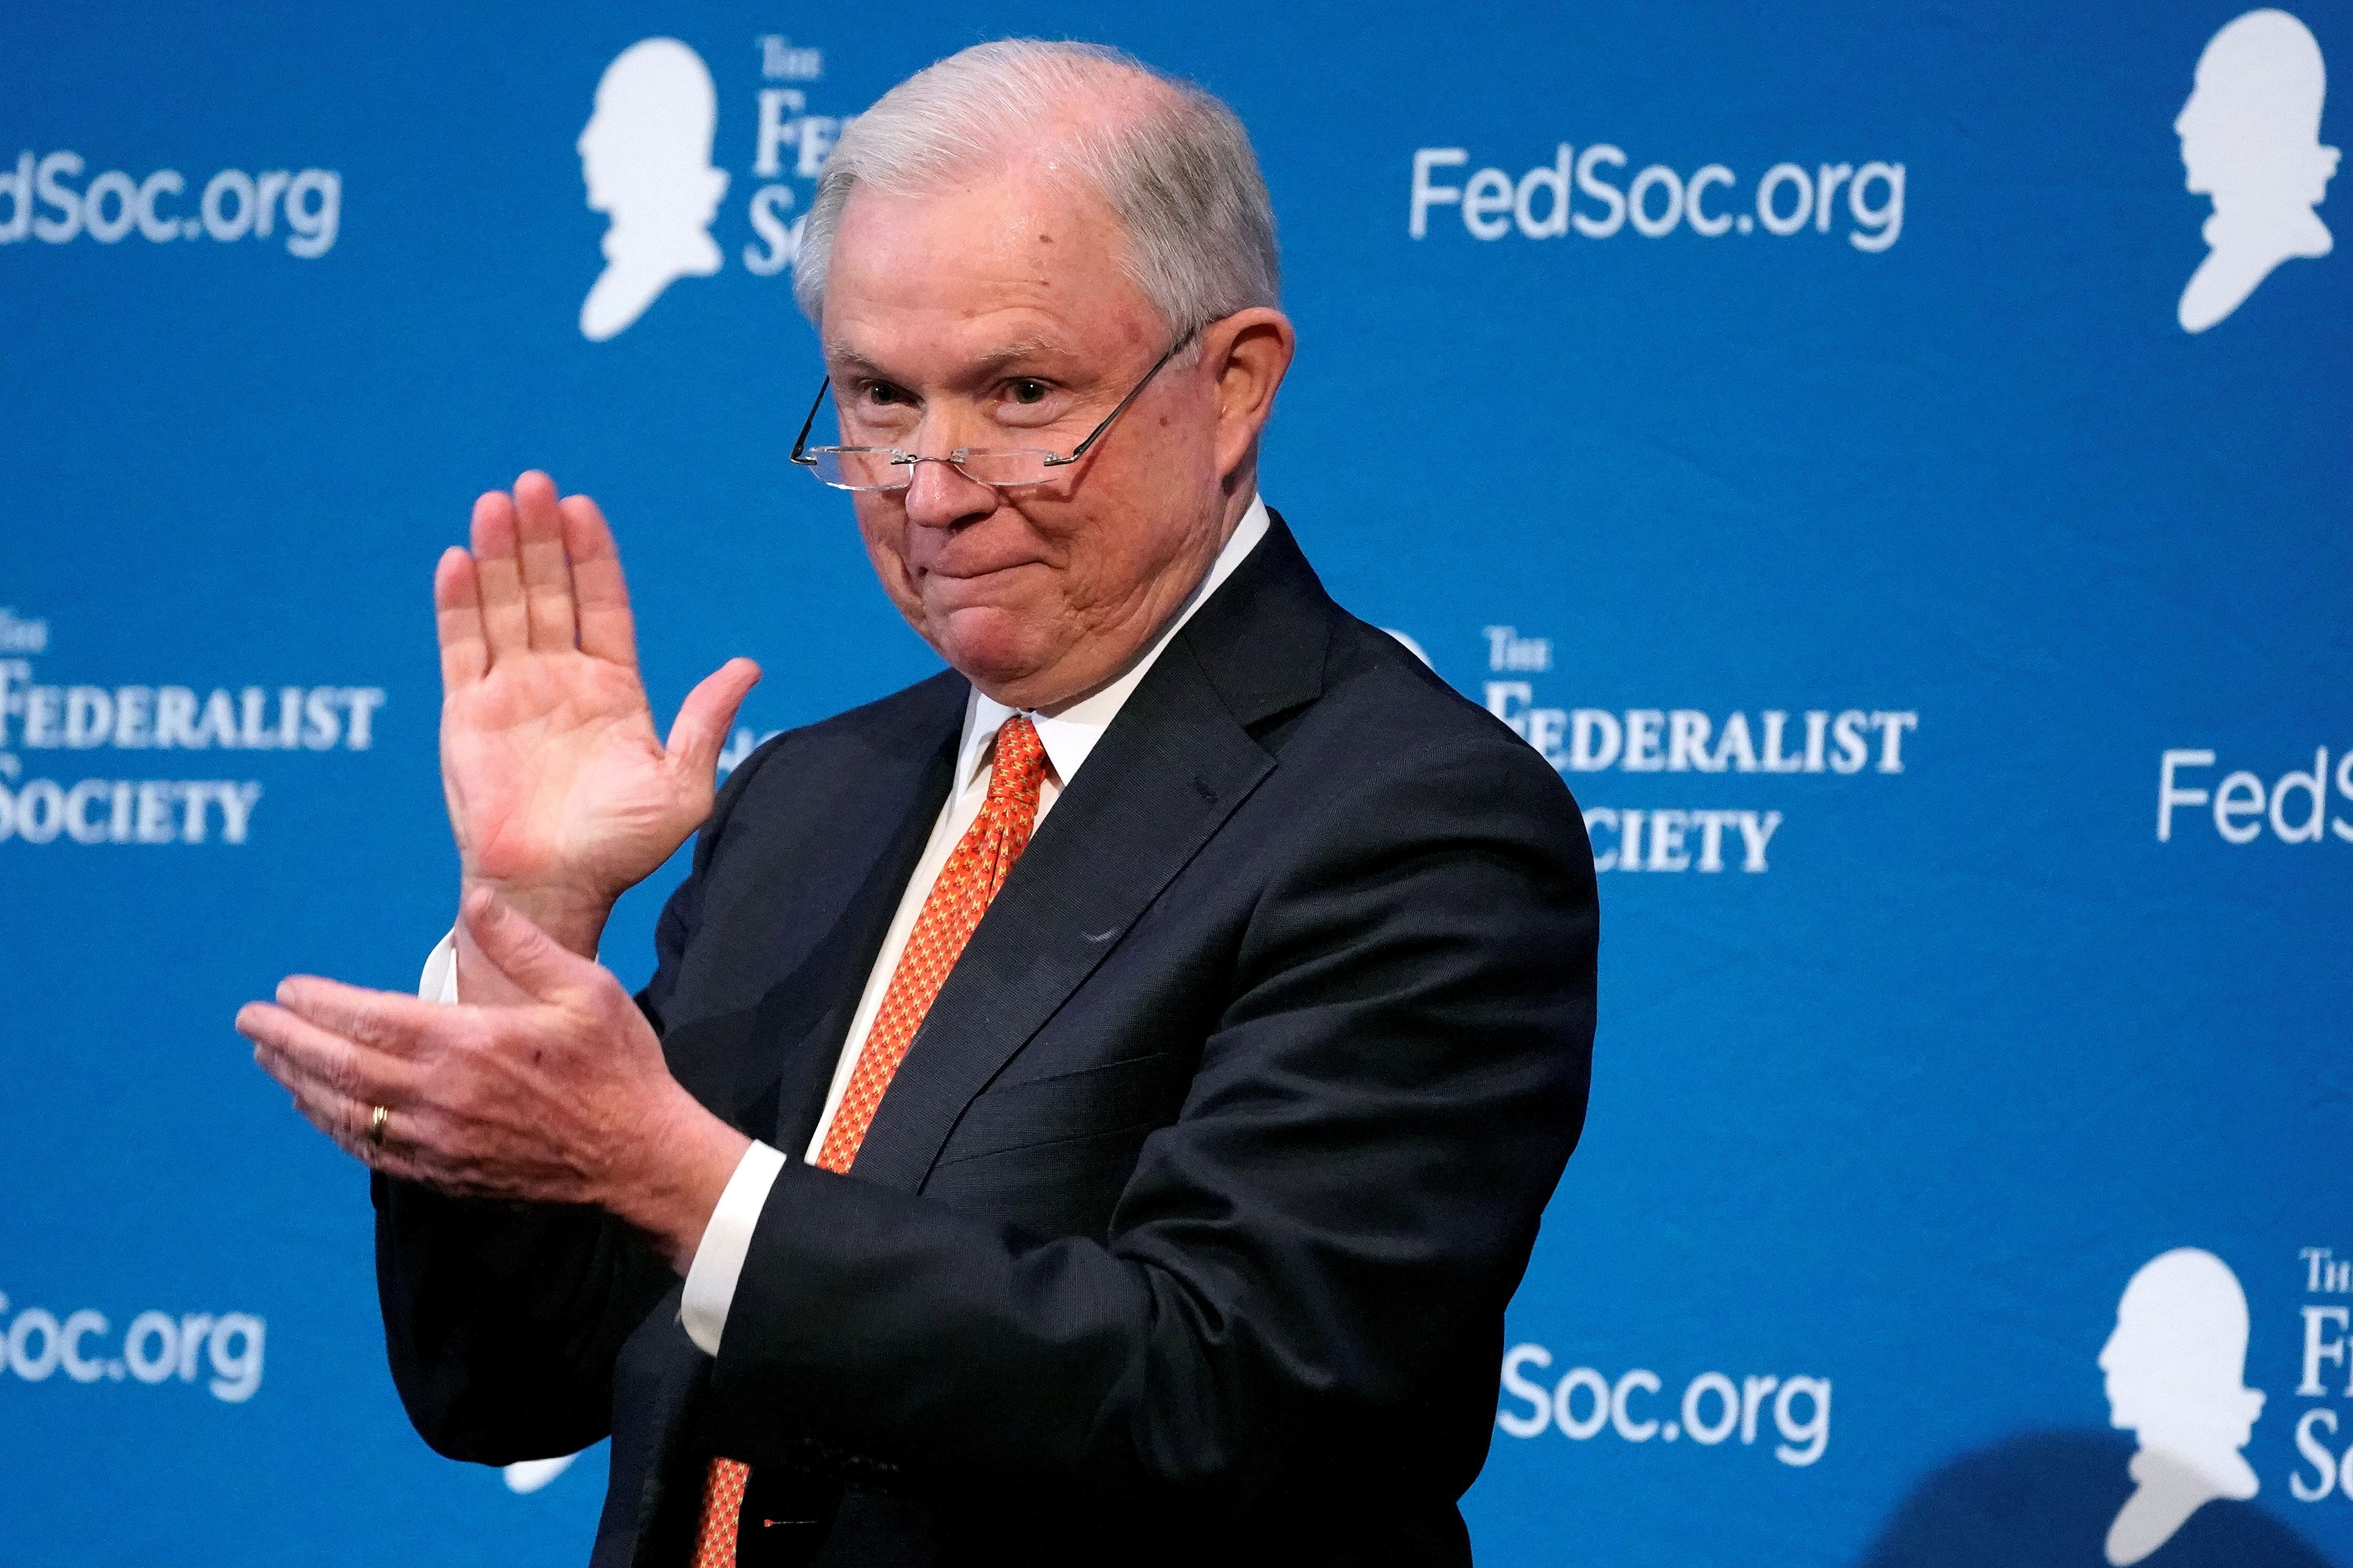 Jeff Sessions laughs it up